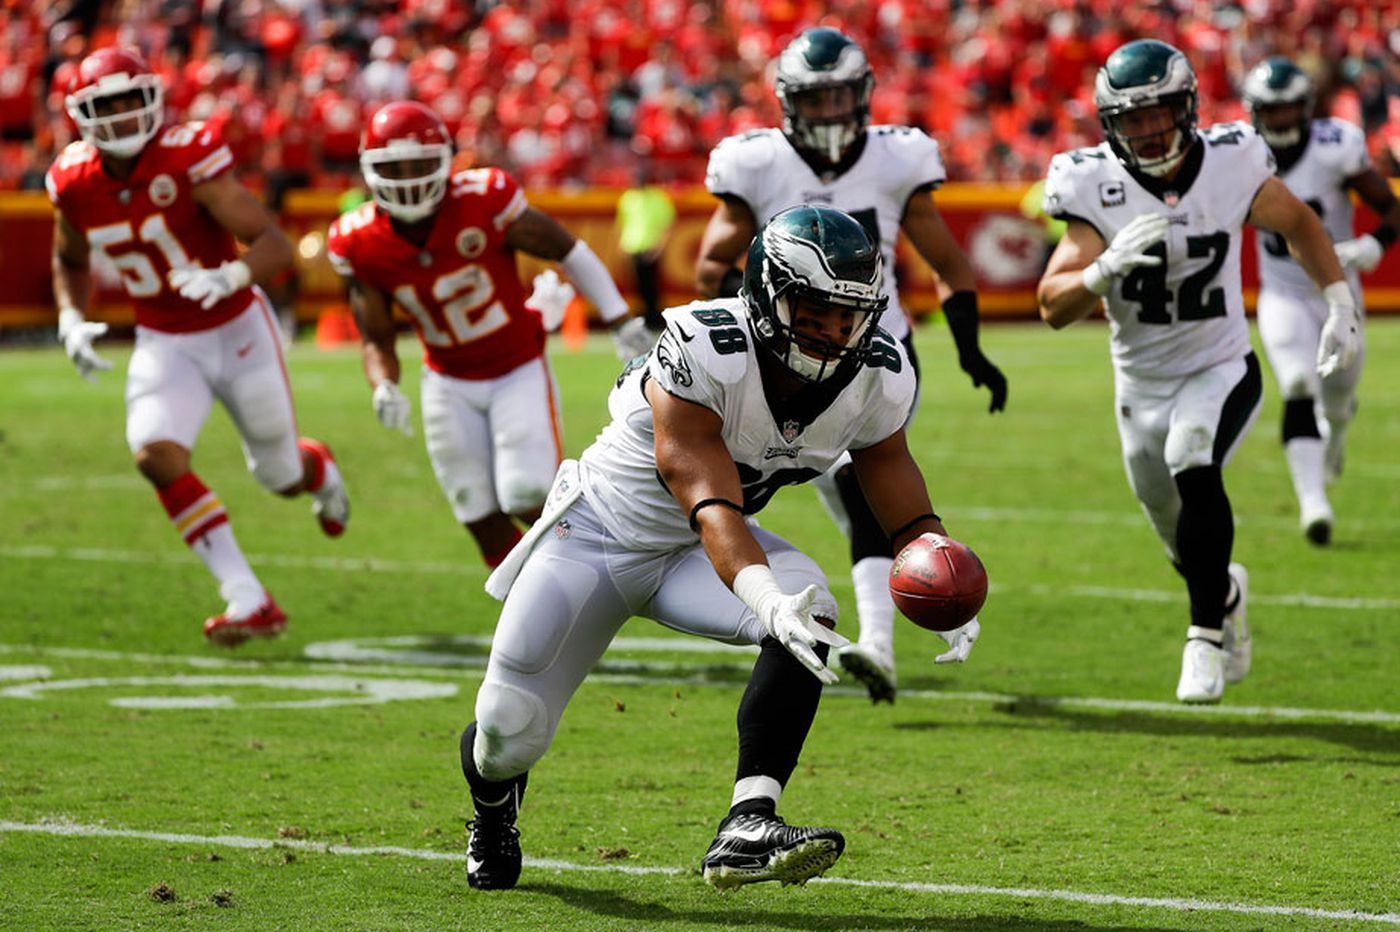 Eagles' onside kick proposal tabled for discussion, but NFL will allow an extra player to return from IR